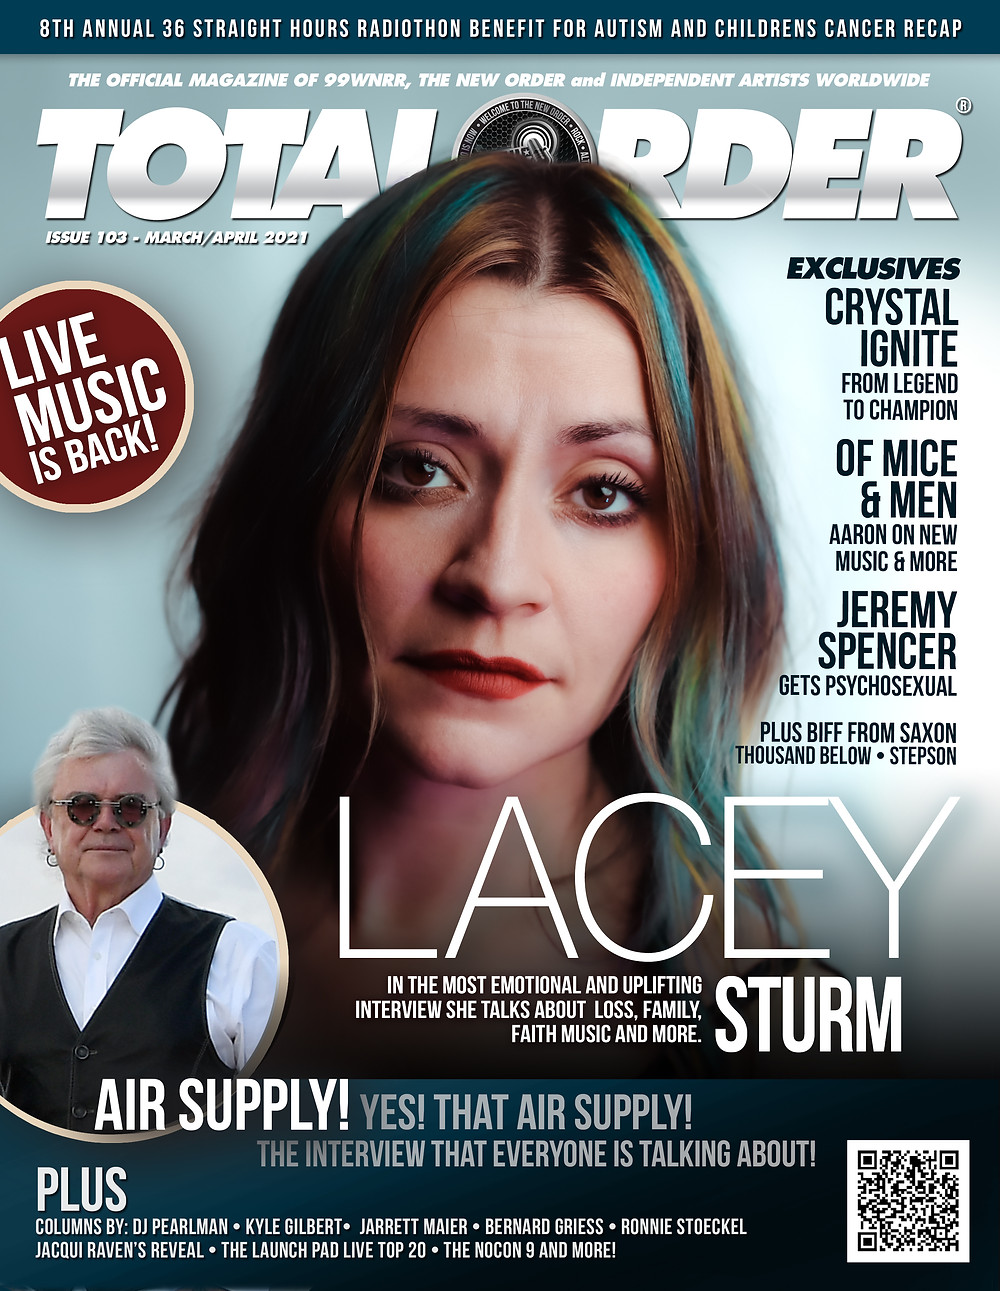 THE HOTTEST NEW ROCK PUBLICATION AROUND! Total Order Magazine RETURNS with a JAM PACKED March/April issue! From icon's in the industry to the up and coming talent taking over the airwaves. in this issue, EXCLUSIVE INTERVIEWS WITH Lacey Sturm, Of Mice & Men, Biff from Saxon, Jeremy Spencer from PsychoSexual, Air Supply's Russell Hitchcock and MORE!    The most comprehensive publication on Independent Music from around the world. There is something for everyone, fans, listeners and musicians.